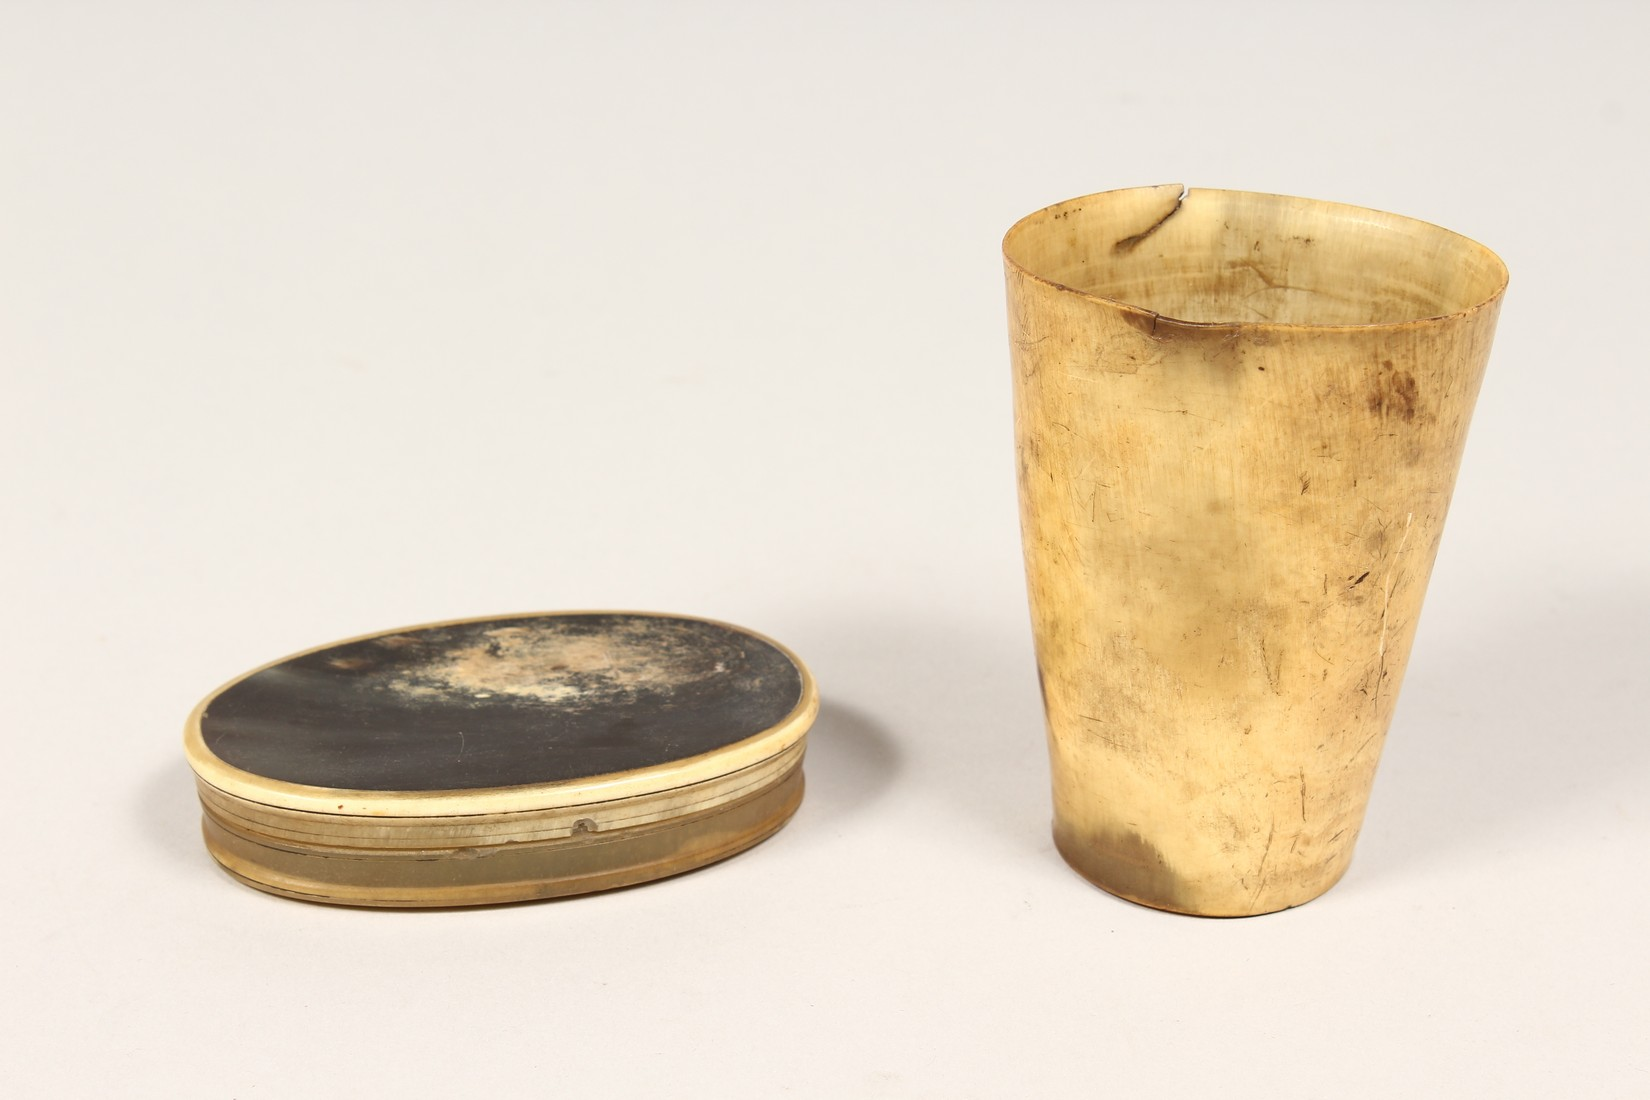 TWO OLD HORN PIECES - Image 2 of 3